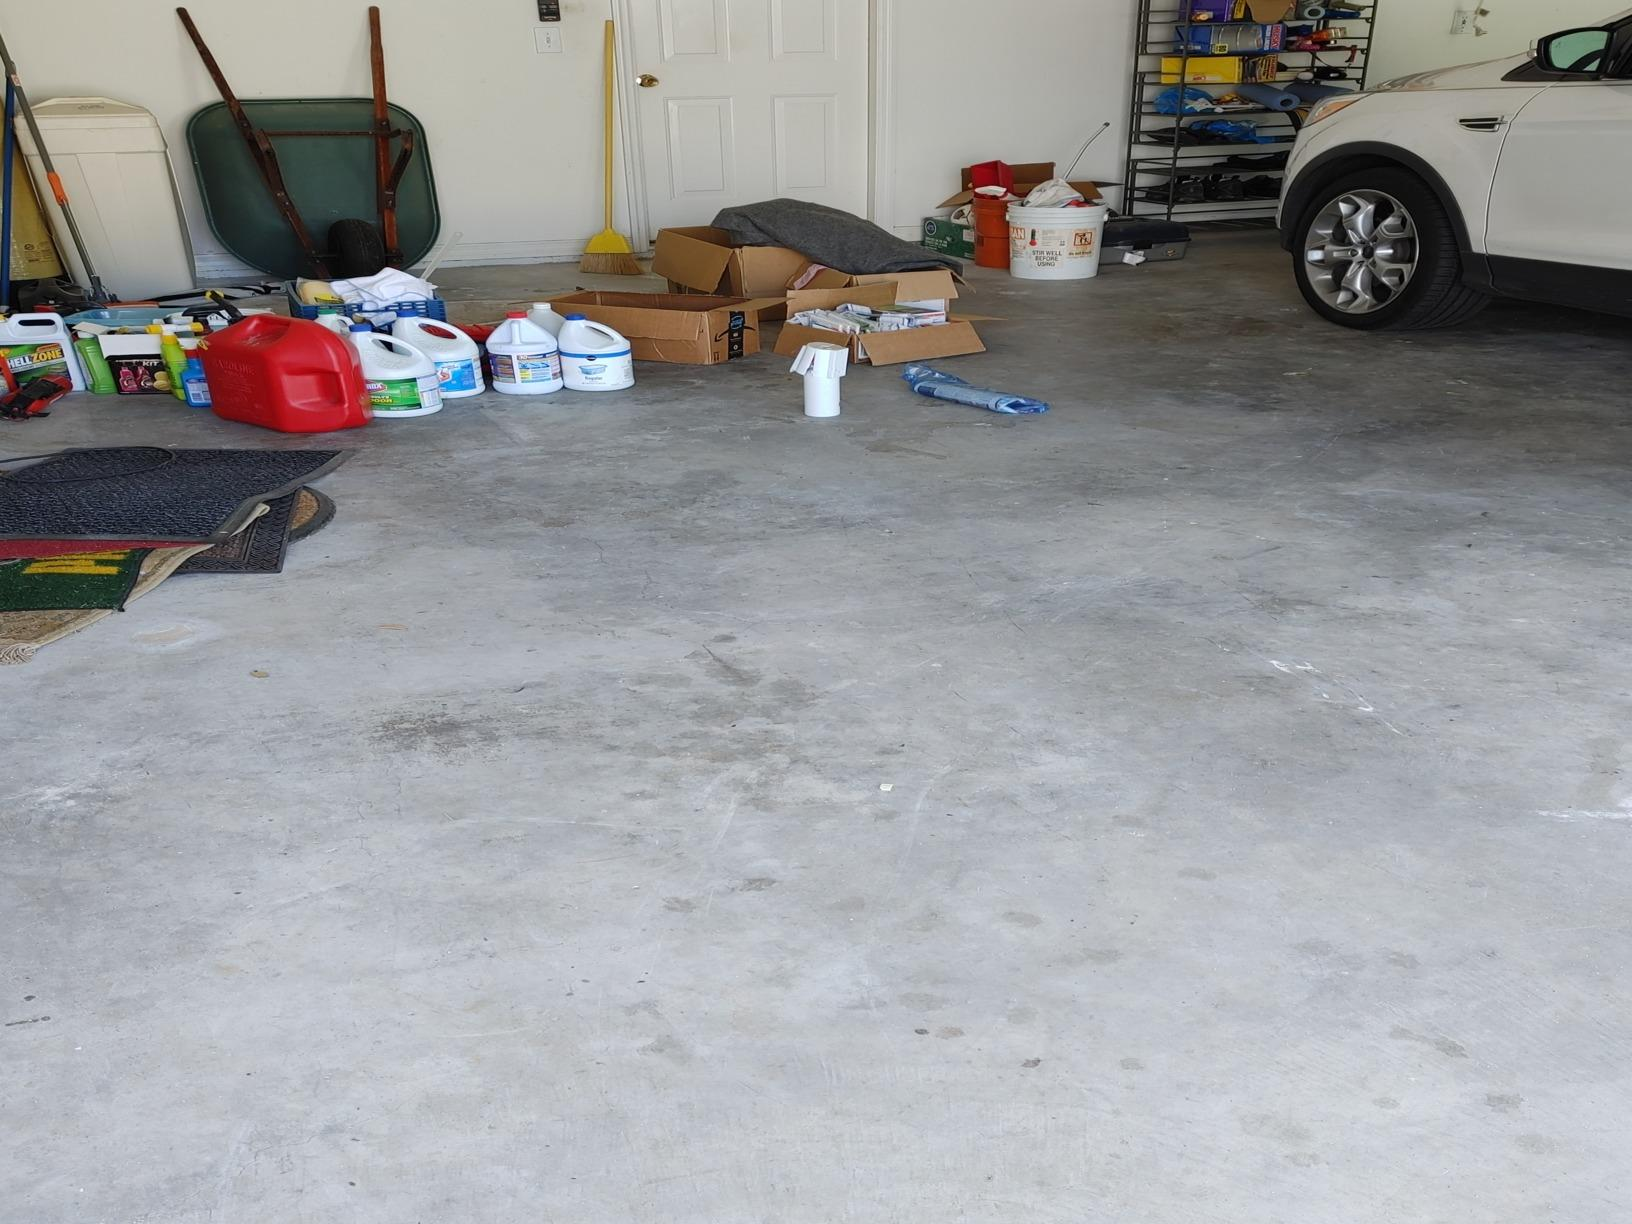 Garage cleanup in Wesley Chapel, FL! - After Photo